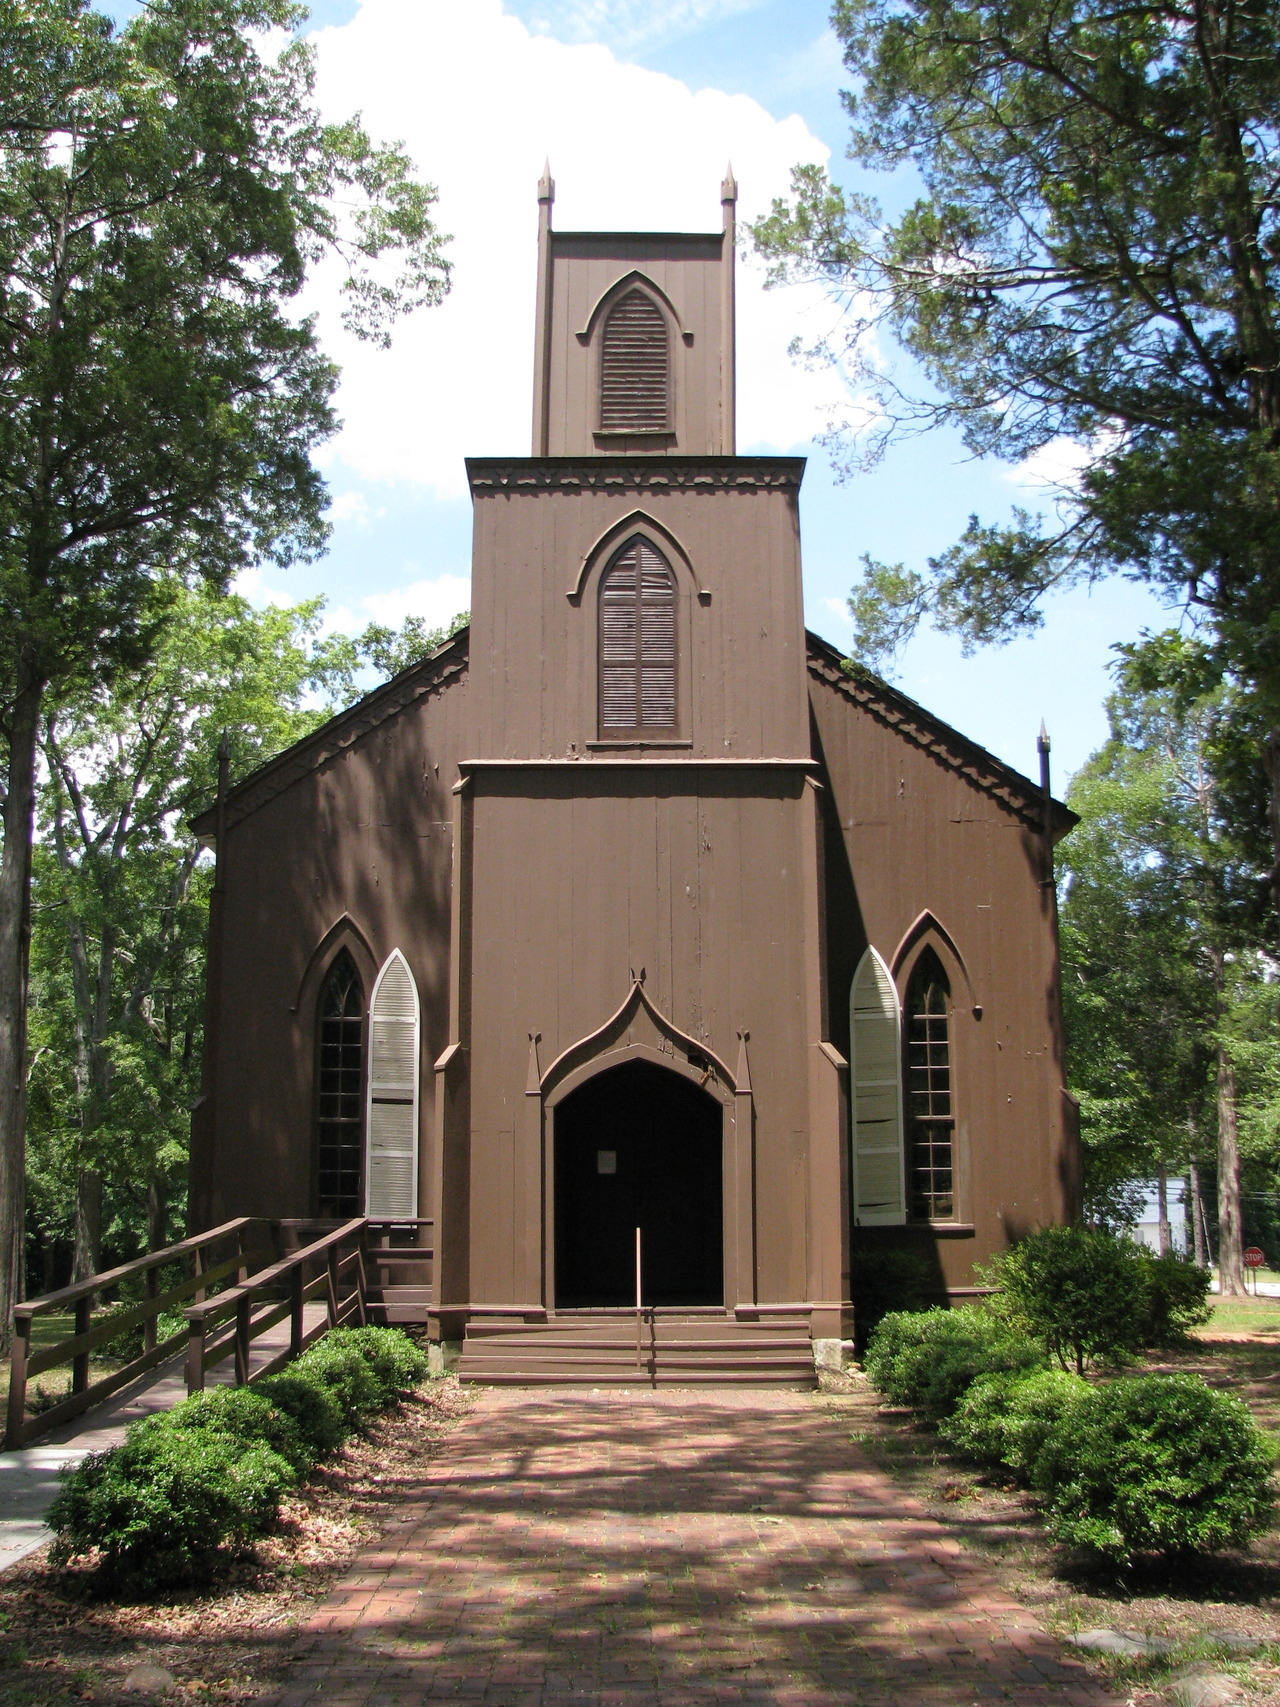 Zion Episcopal Church, Talbotton, Talbot County, Georgia